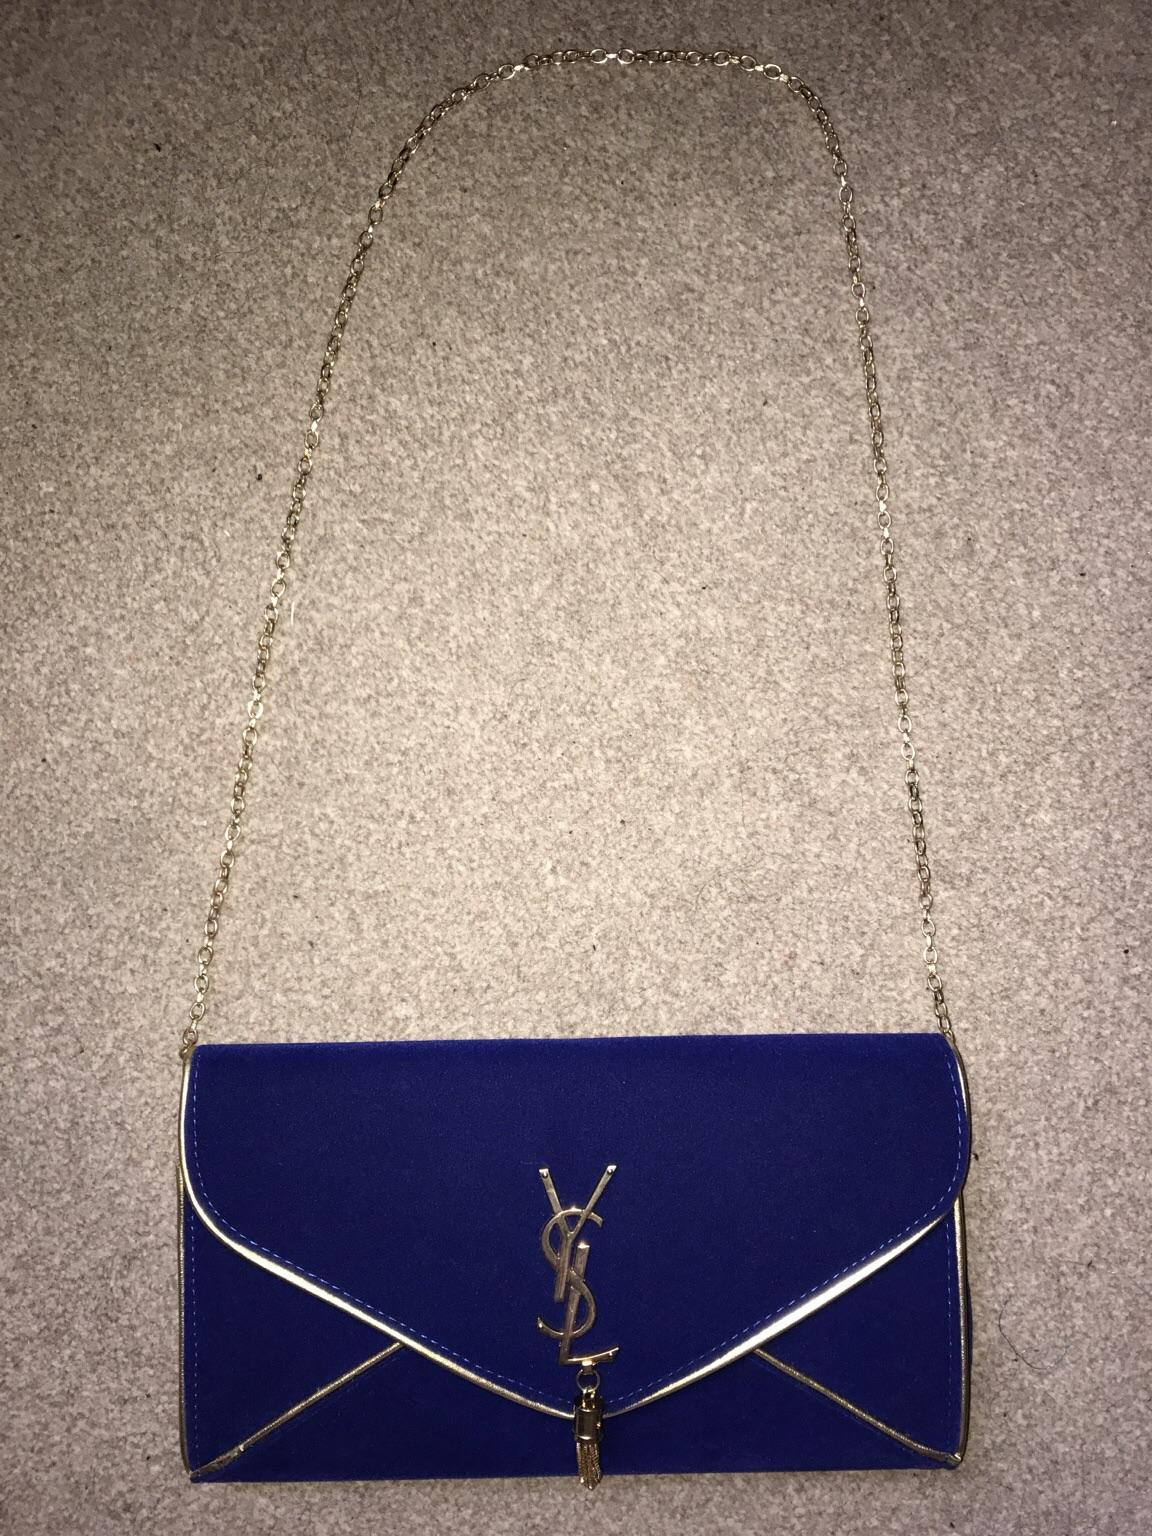 02012802949 Women's YSL clutch bag in WS10 Walsall for £10.00 for sale - Shpock